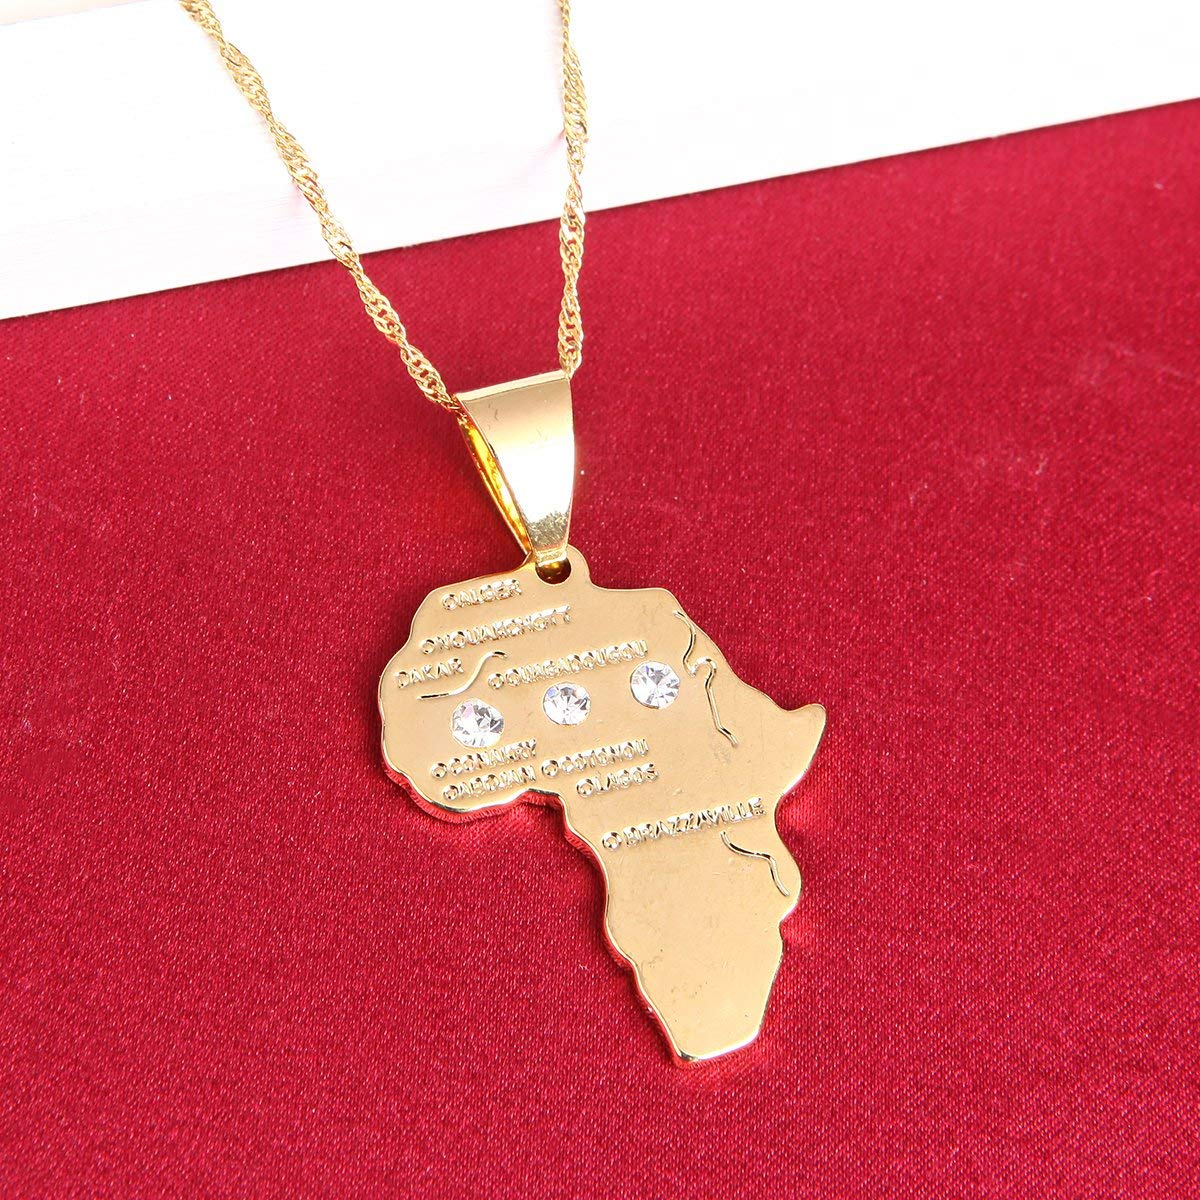 BR Gold Jewelry Big Size Crystal Africa Map Pendant Necklace Women Girl 24K Gold Plated African Map Hiphop Item - Ufumbuzi - Home